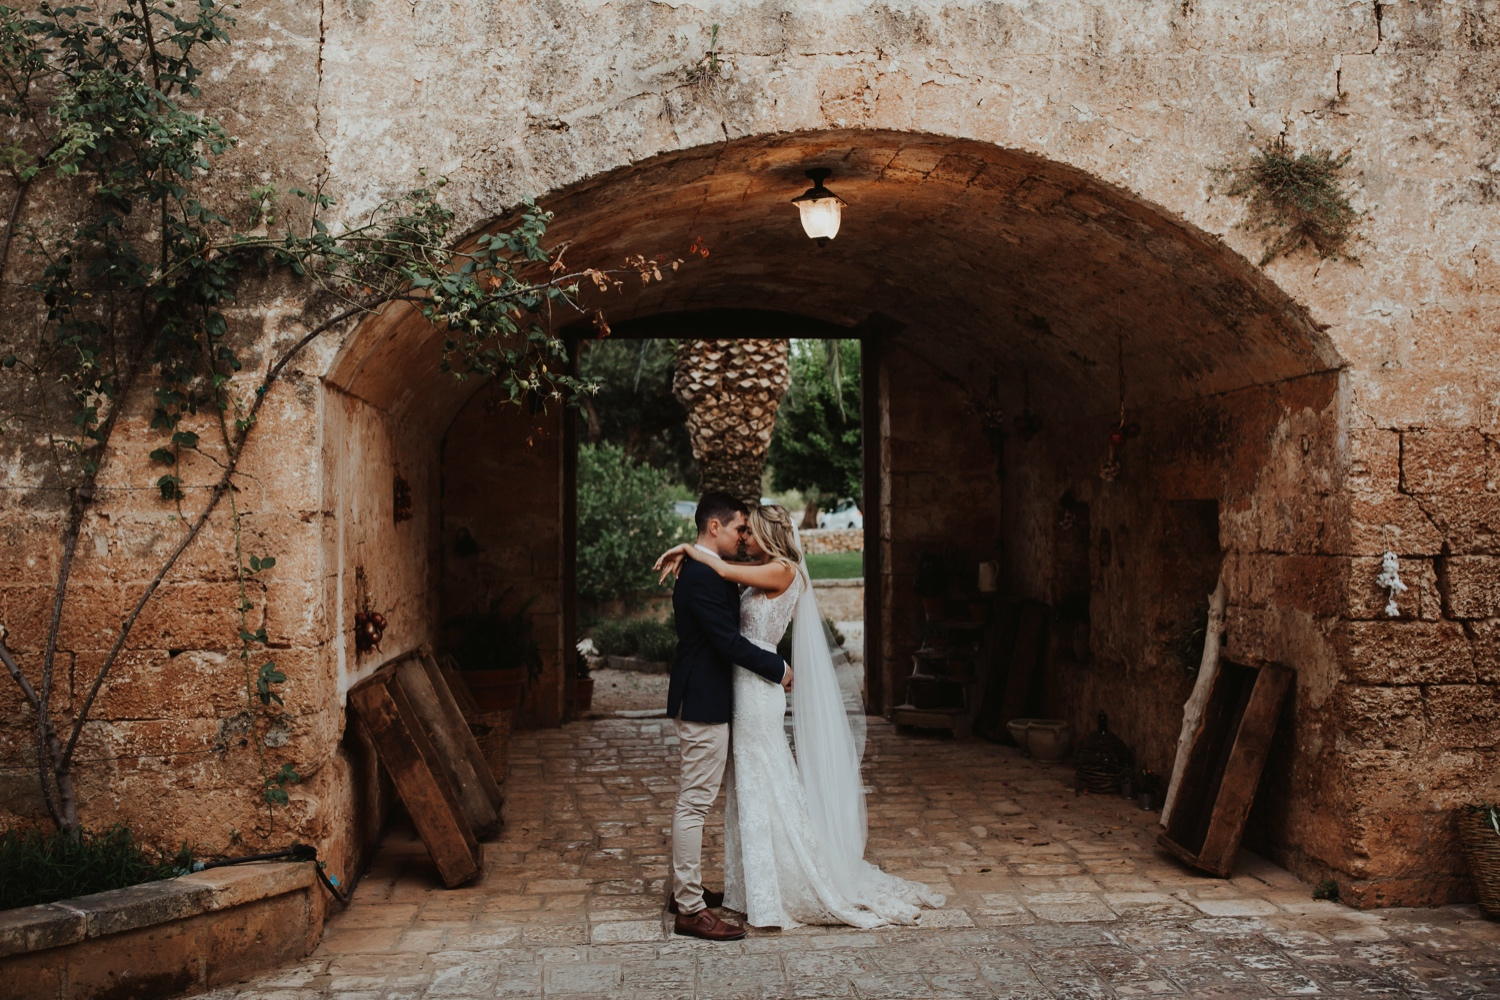 0000000061_Rob and Lucy-698_Weddings_Destination_Italy_got_Just_Engaged.jpg